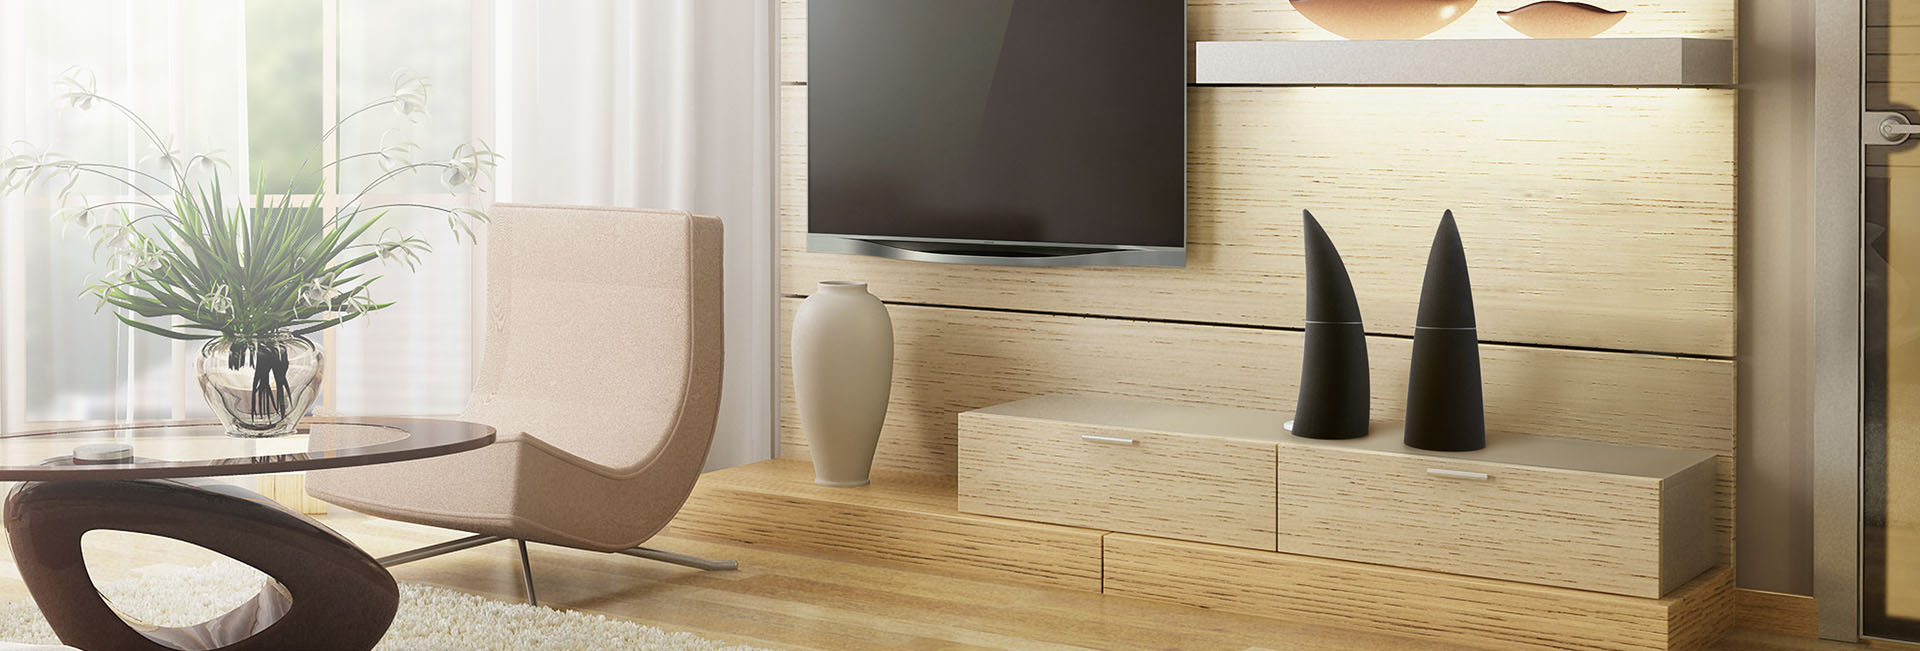 SPEAKERS FOR TV AND LIVING ROOMS